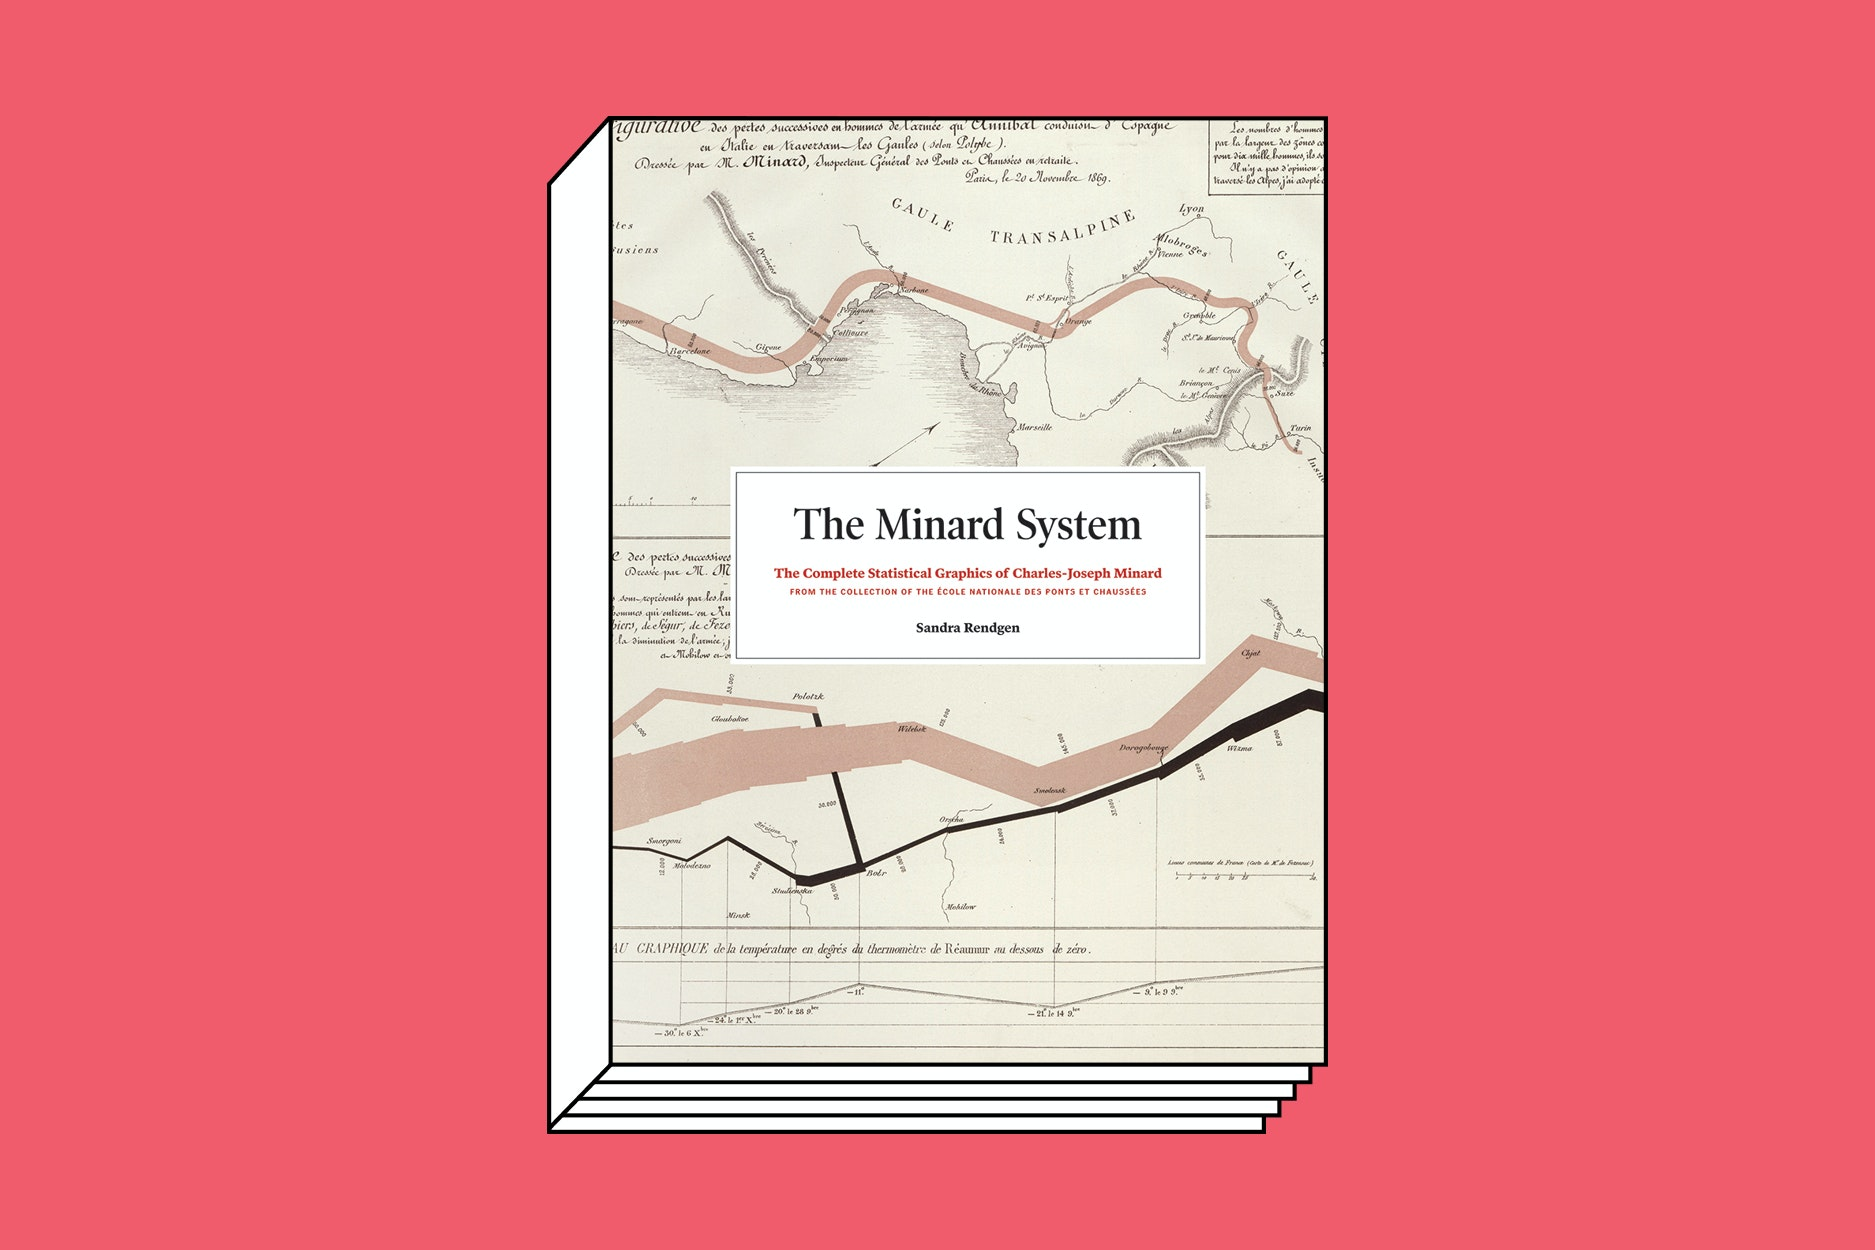 """The MInard System"" collects 60 of Charles-Joseph Minard's seminal designs."